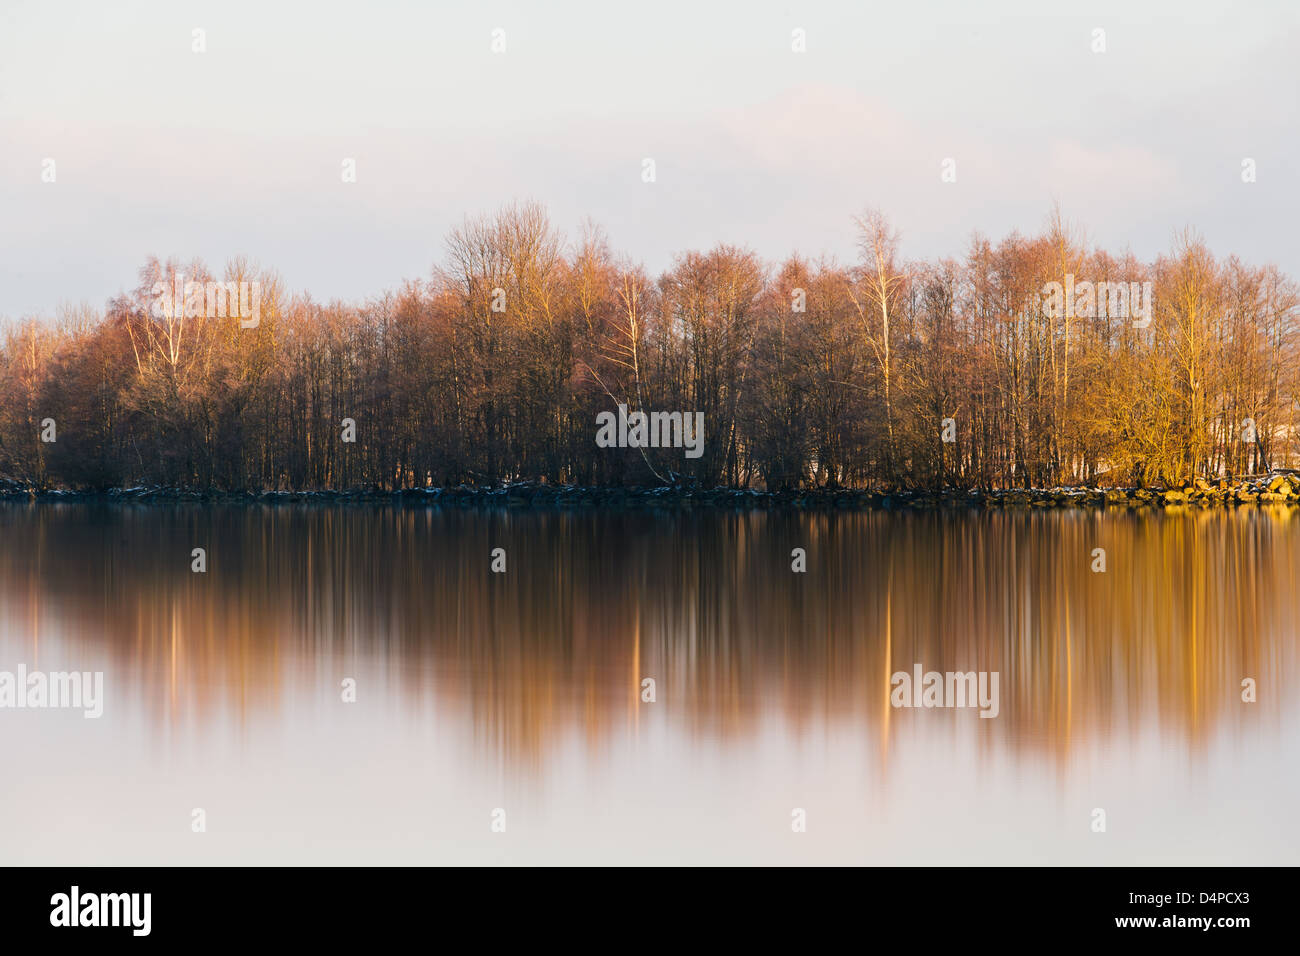 Trees on riverbank, Göta Älv, Sweden, Europe - Stock Image